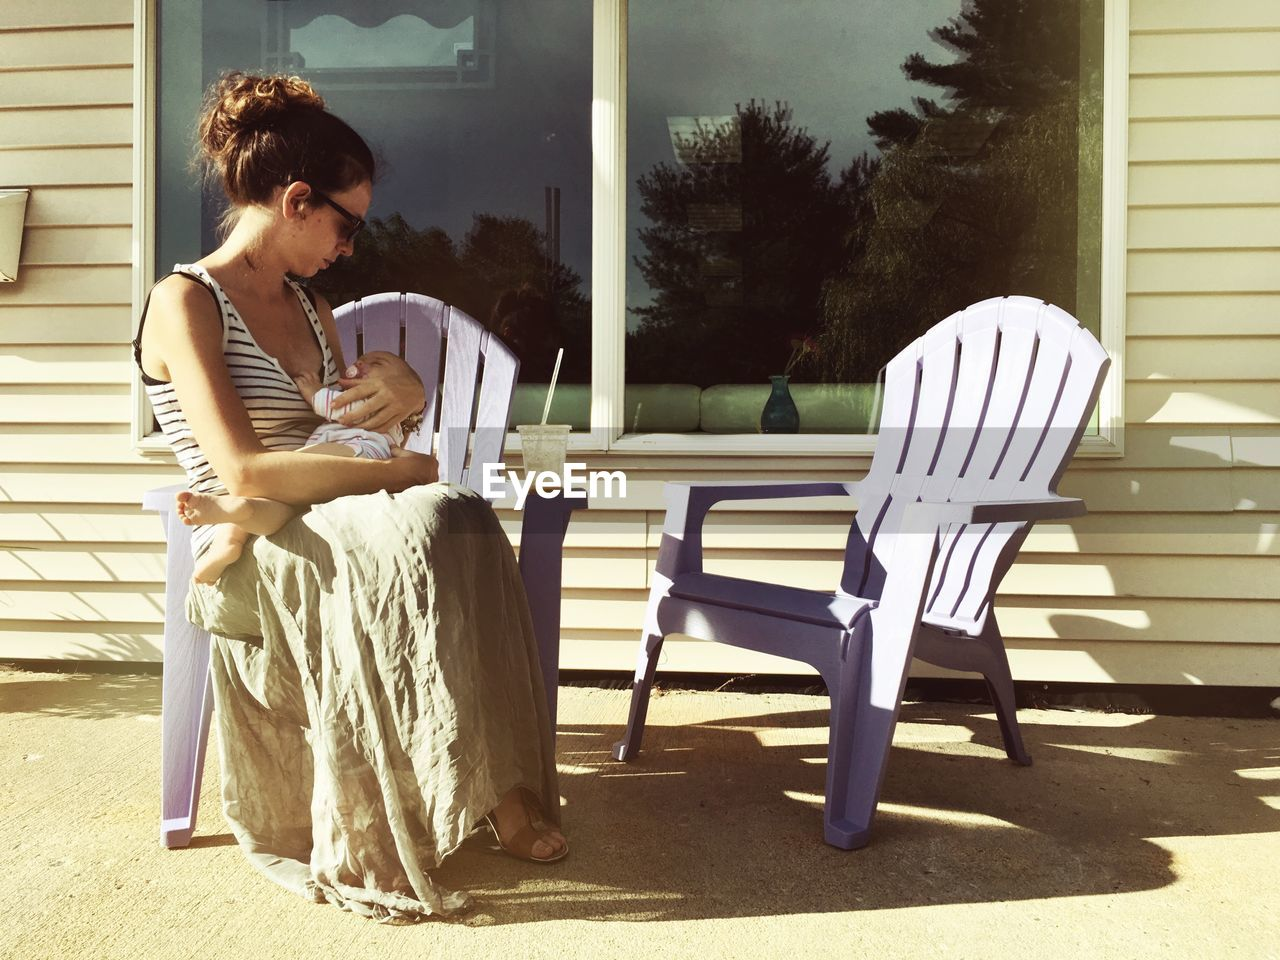 Woman with baby sitting on adirondack chair in back yard